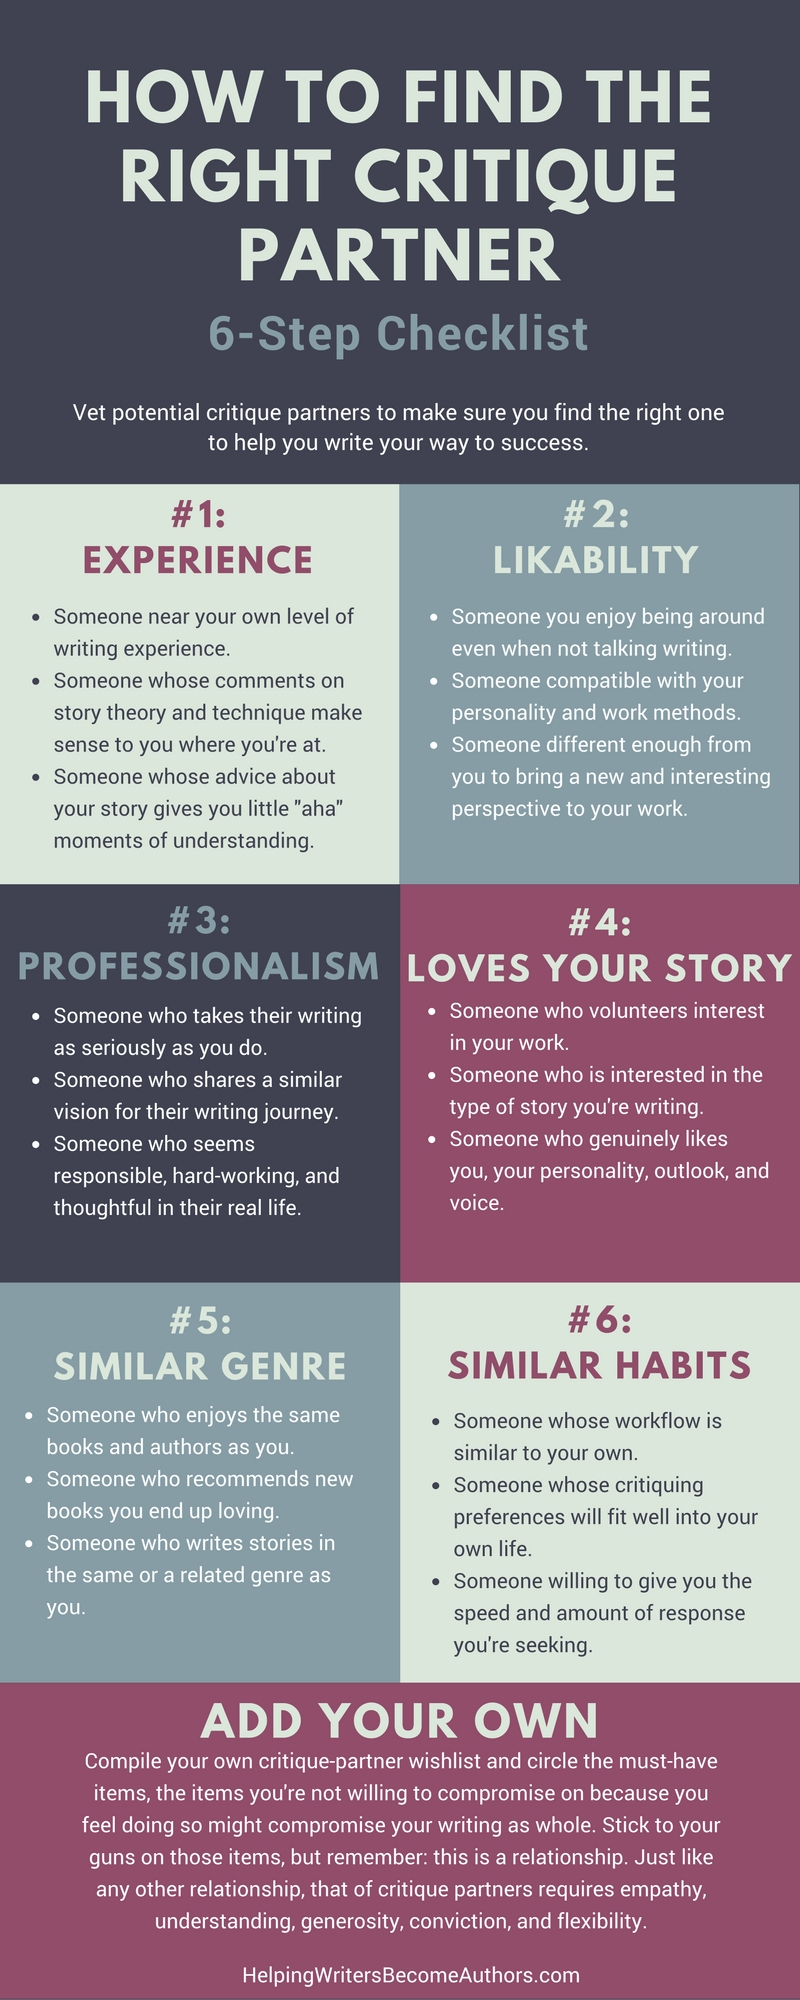 How to find the right critique partner